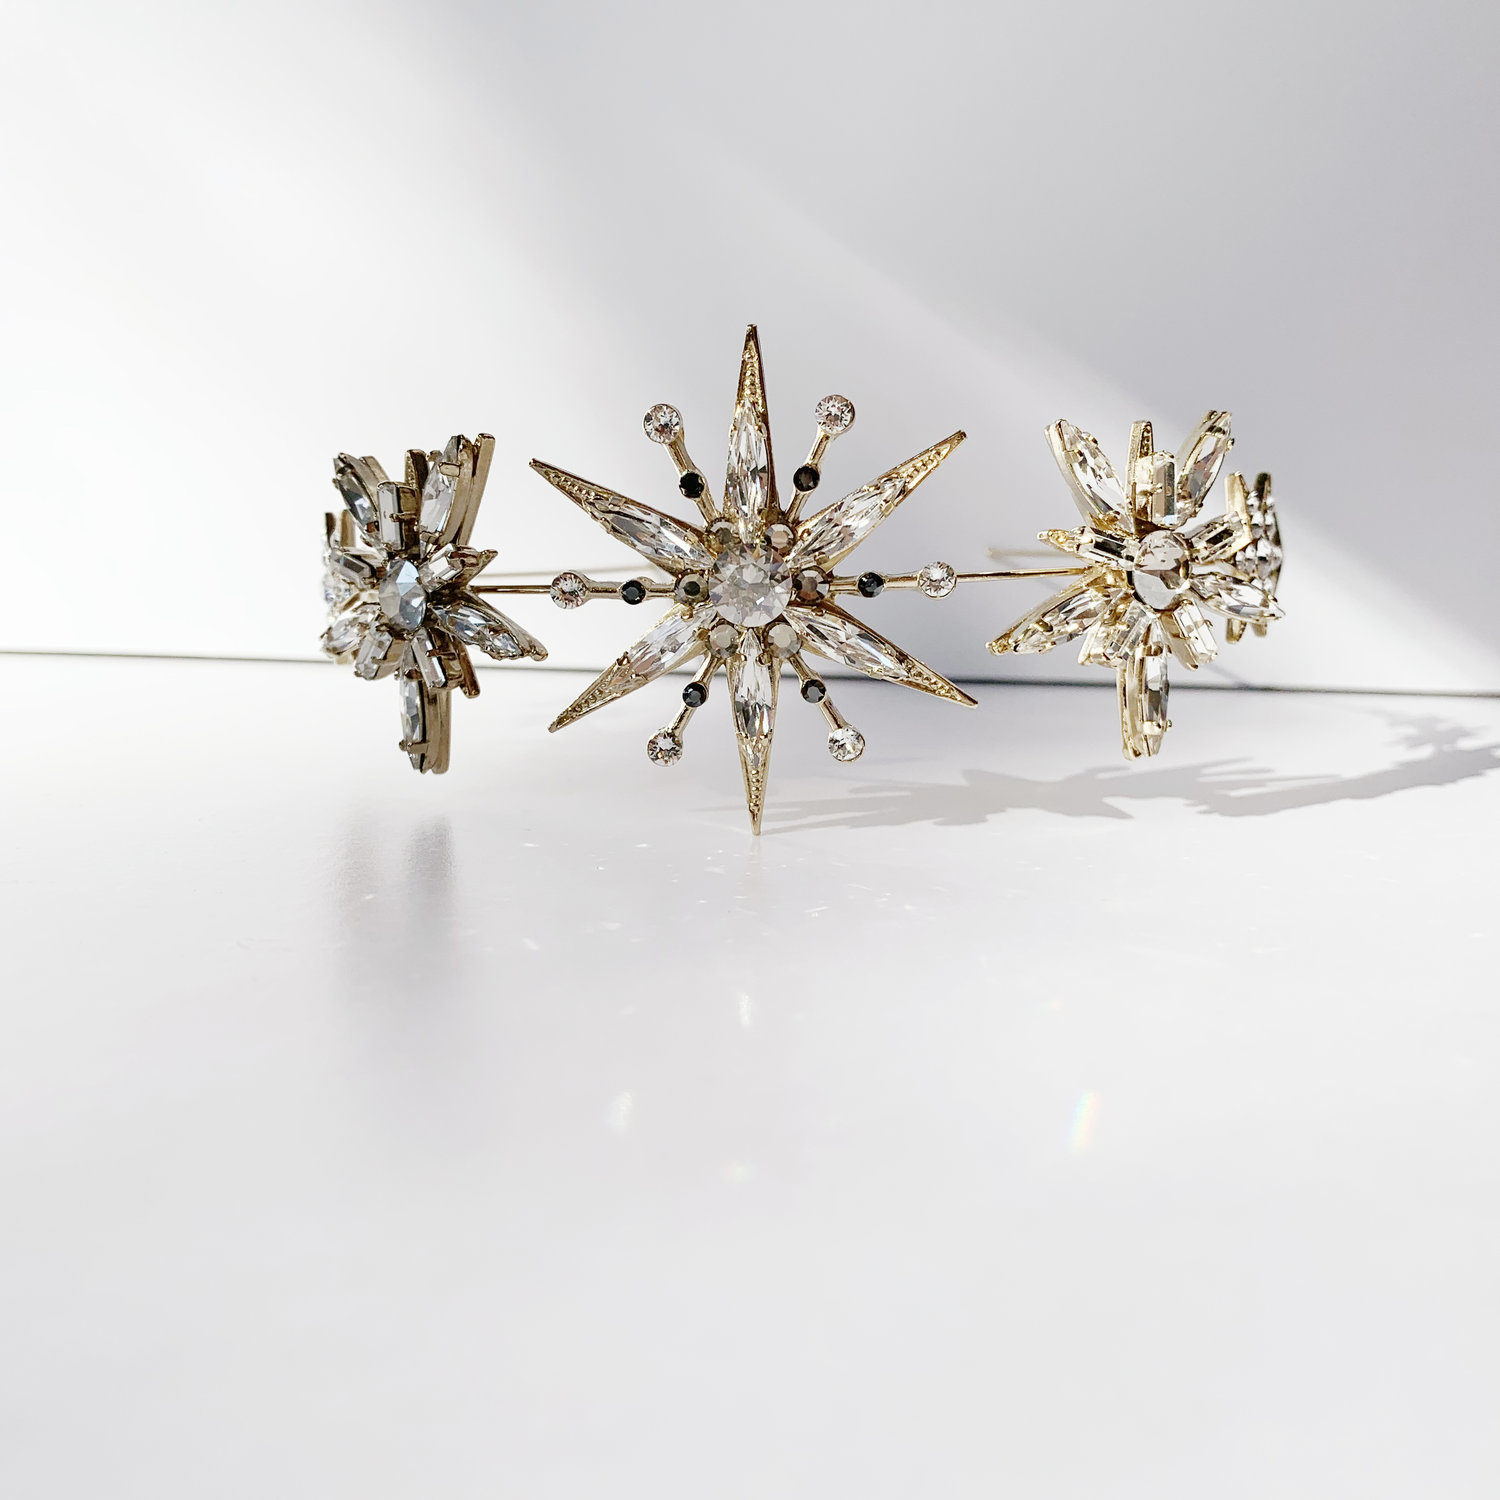 Tilly Thomas Lux Evenstar headpiece